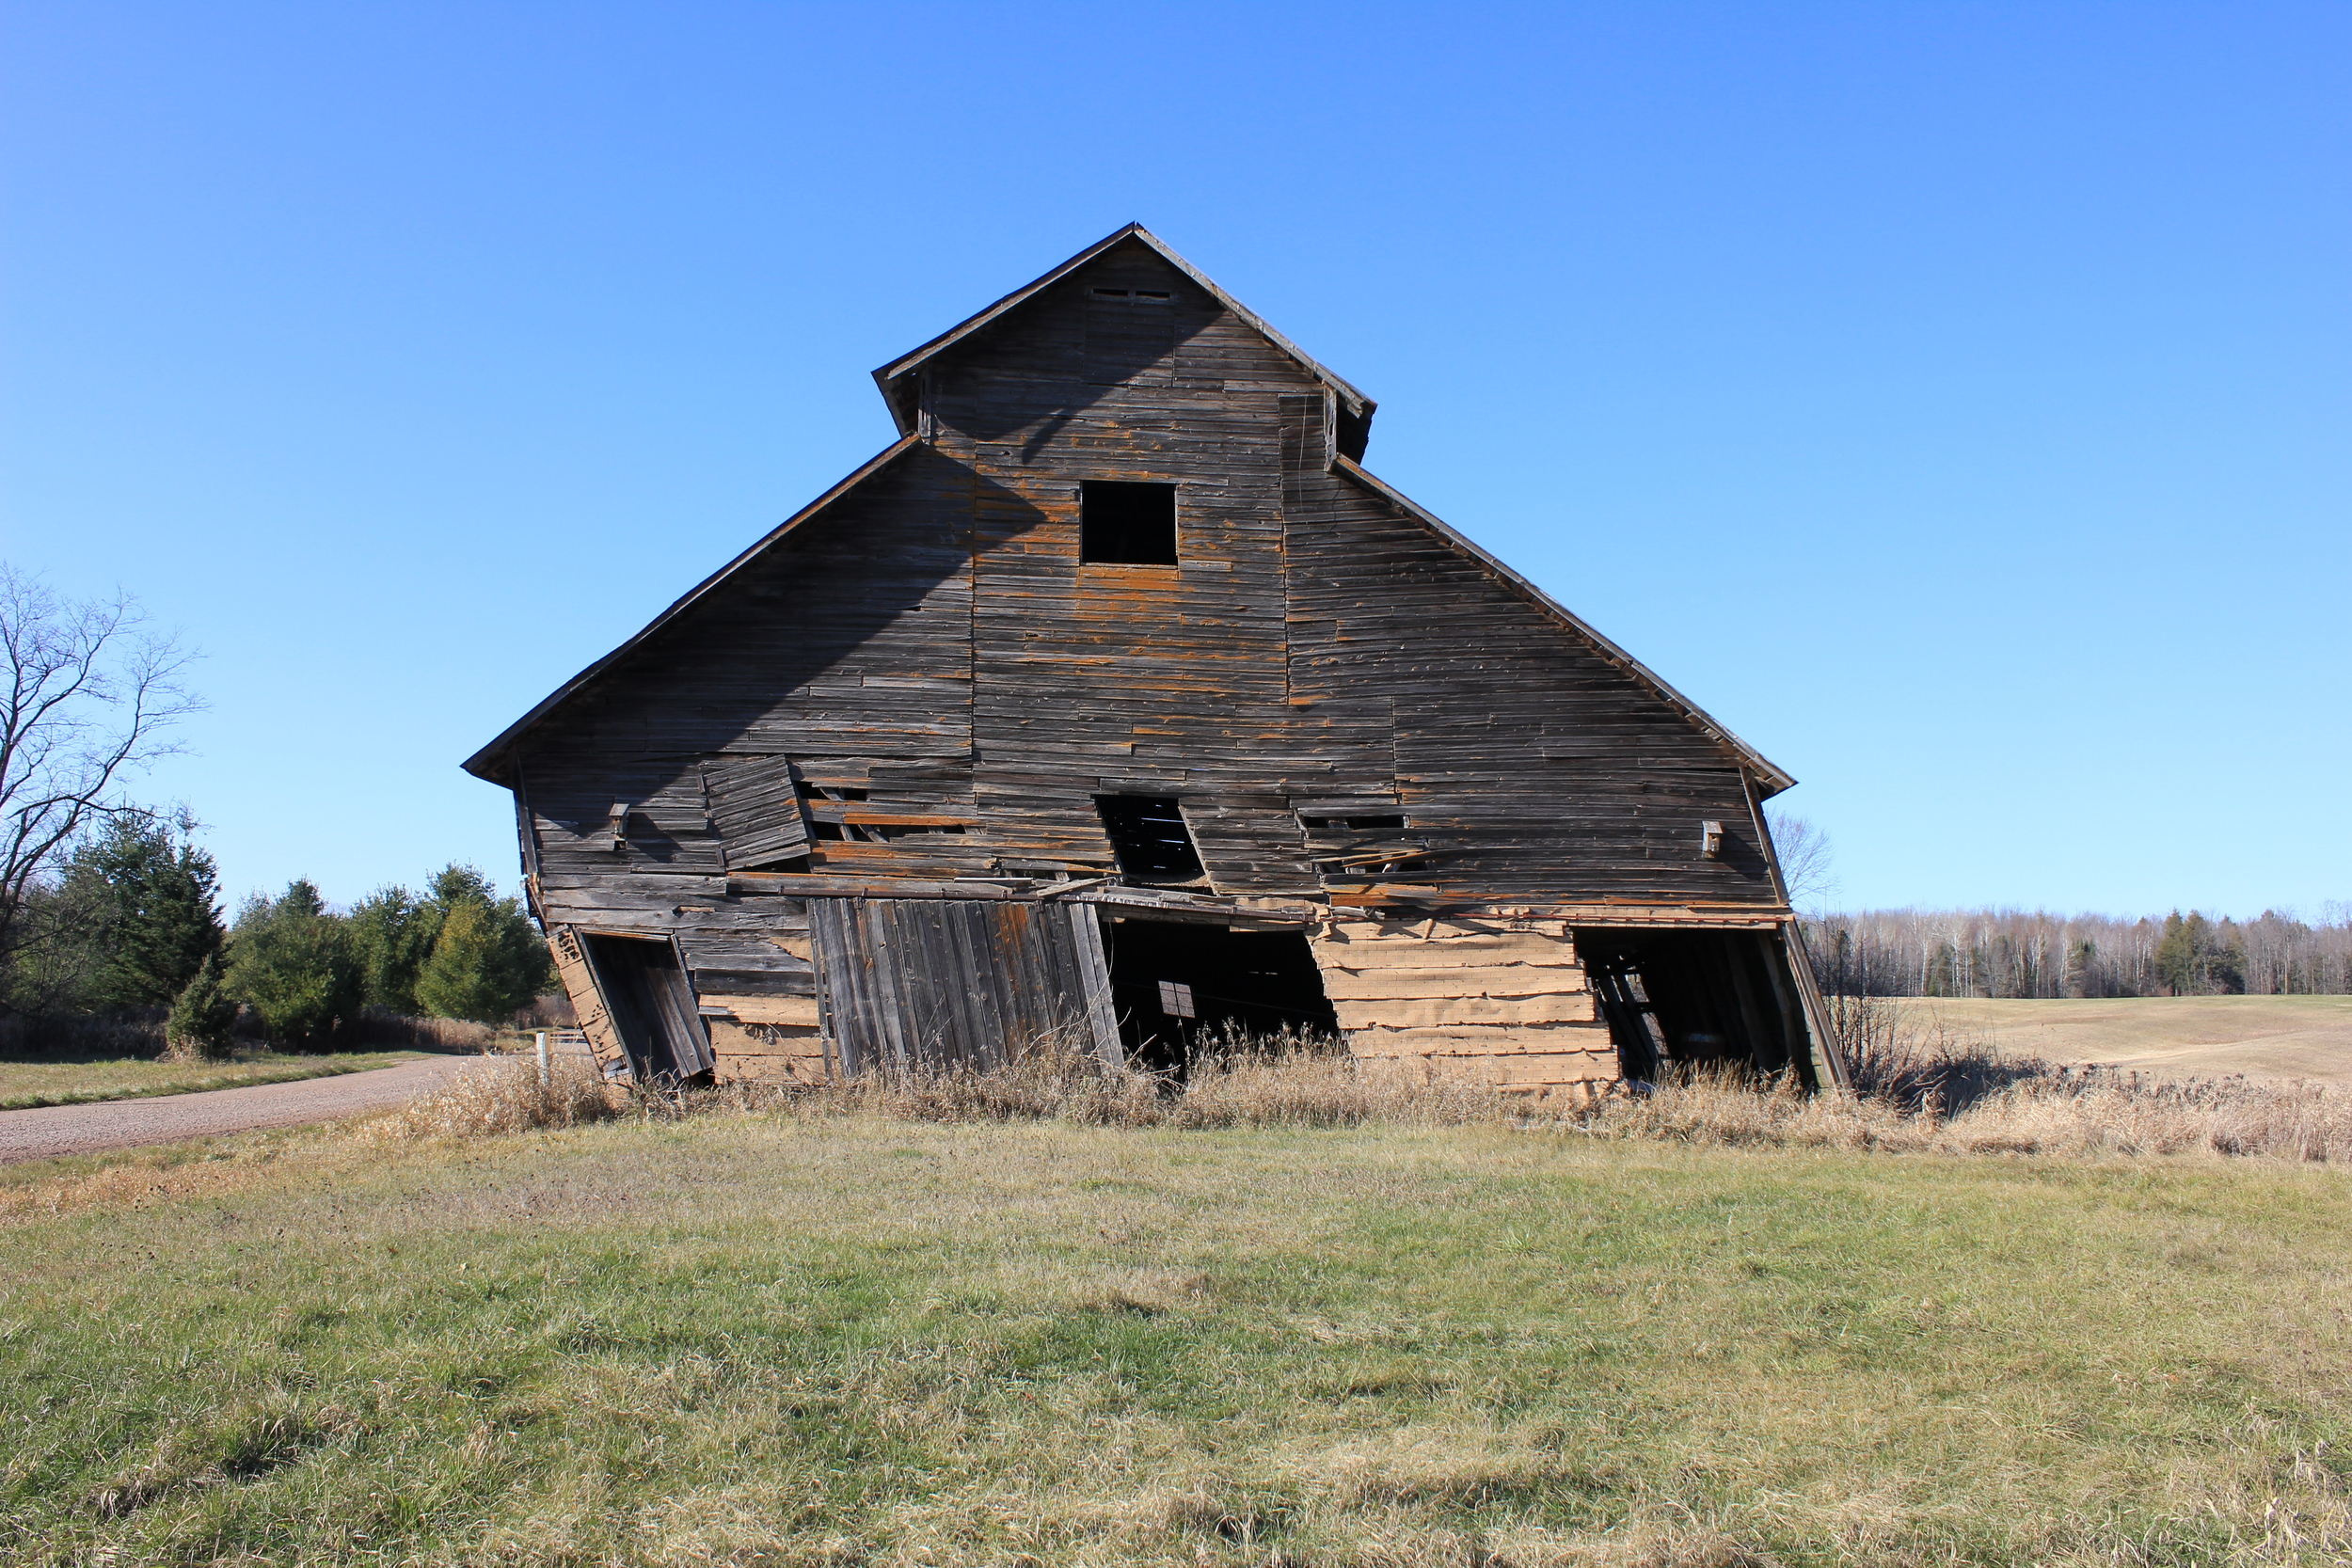 """The last picture I was able to take of our old Swedish barn.November 2012.                                0     false             18 pt     18 pt     0     0         false     false     false                                                          /* Style Definitions */ table.MsoNormalTable {mso-style-name:""""Table Normal""""; mso-tstyle-rowband-size:0; mso-tstyle-colband-size:0; mso-style-noshow:yes; mso-style-parent:""""""""; mso-padding-alt:0in 5.4pt 0in 5.4pt; mso-para-margin:0in; mso-para-margin-bottom:.0001pt; mso-pagination:widow-orphan; font-size:12.0pt; font-family:""""Times New Roman""""; mso-ascii-font-family:Cambria; mso-ascii-theme-font:minor-latin; mso-hansi-font-family:Cambria; mso-hansi-theme-font:minor-latin;}"""